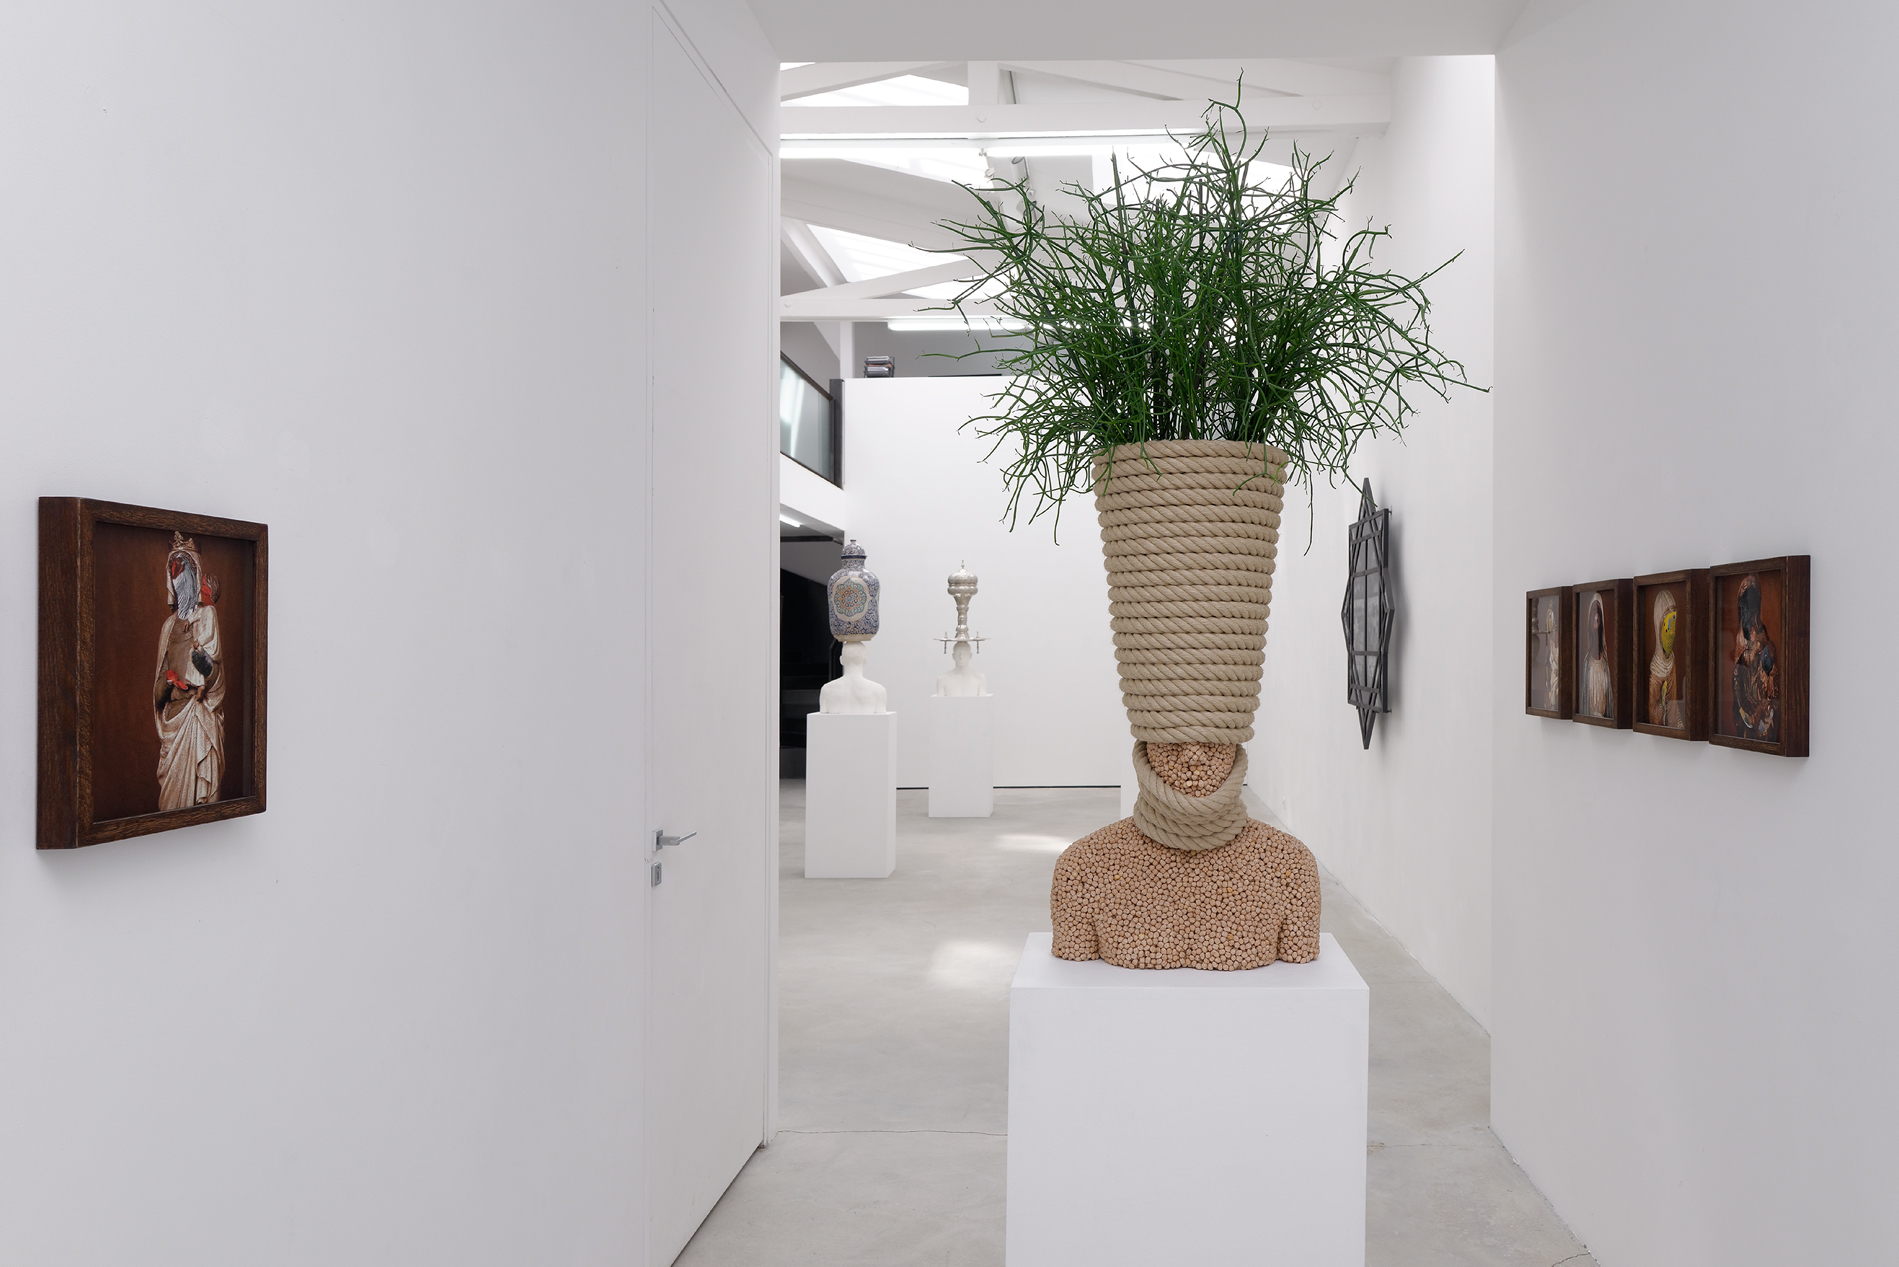 Mehdi-Georges Lahlou, Of the Confused Memory, Rabouan Moussion Gallery